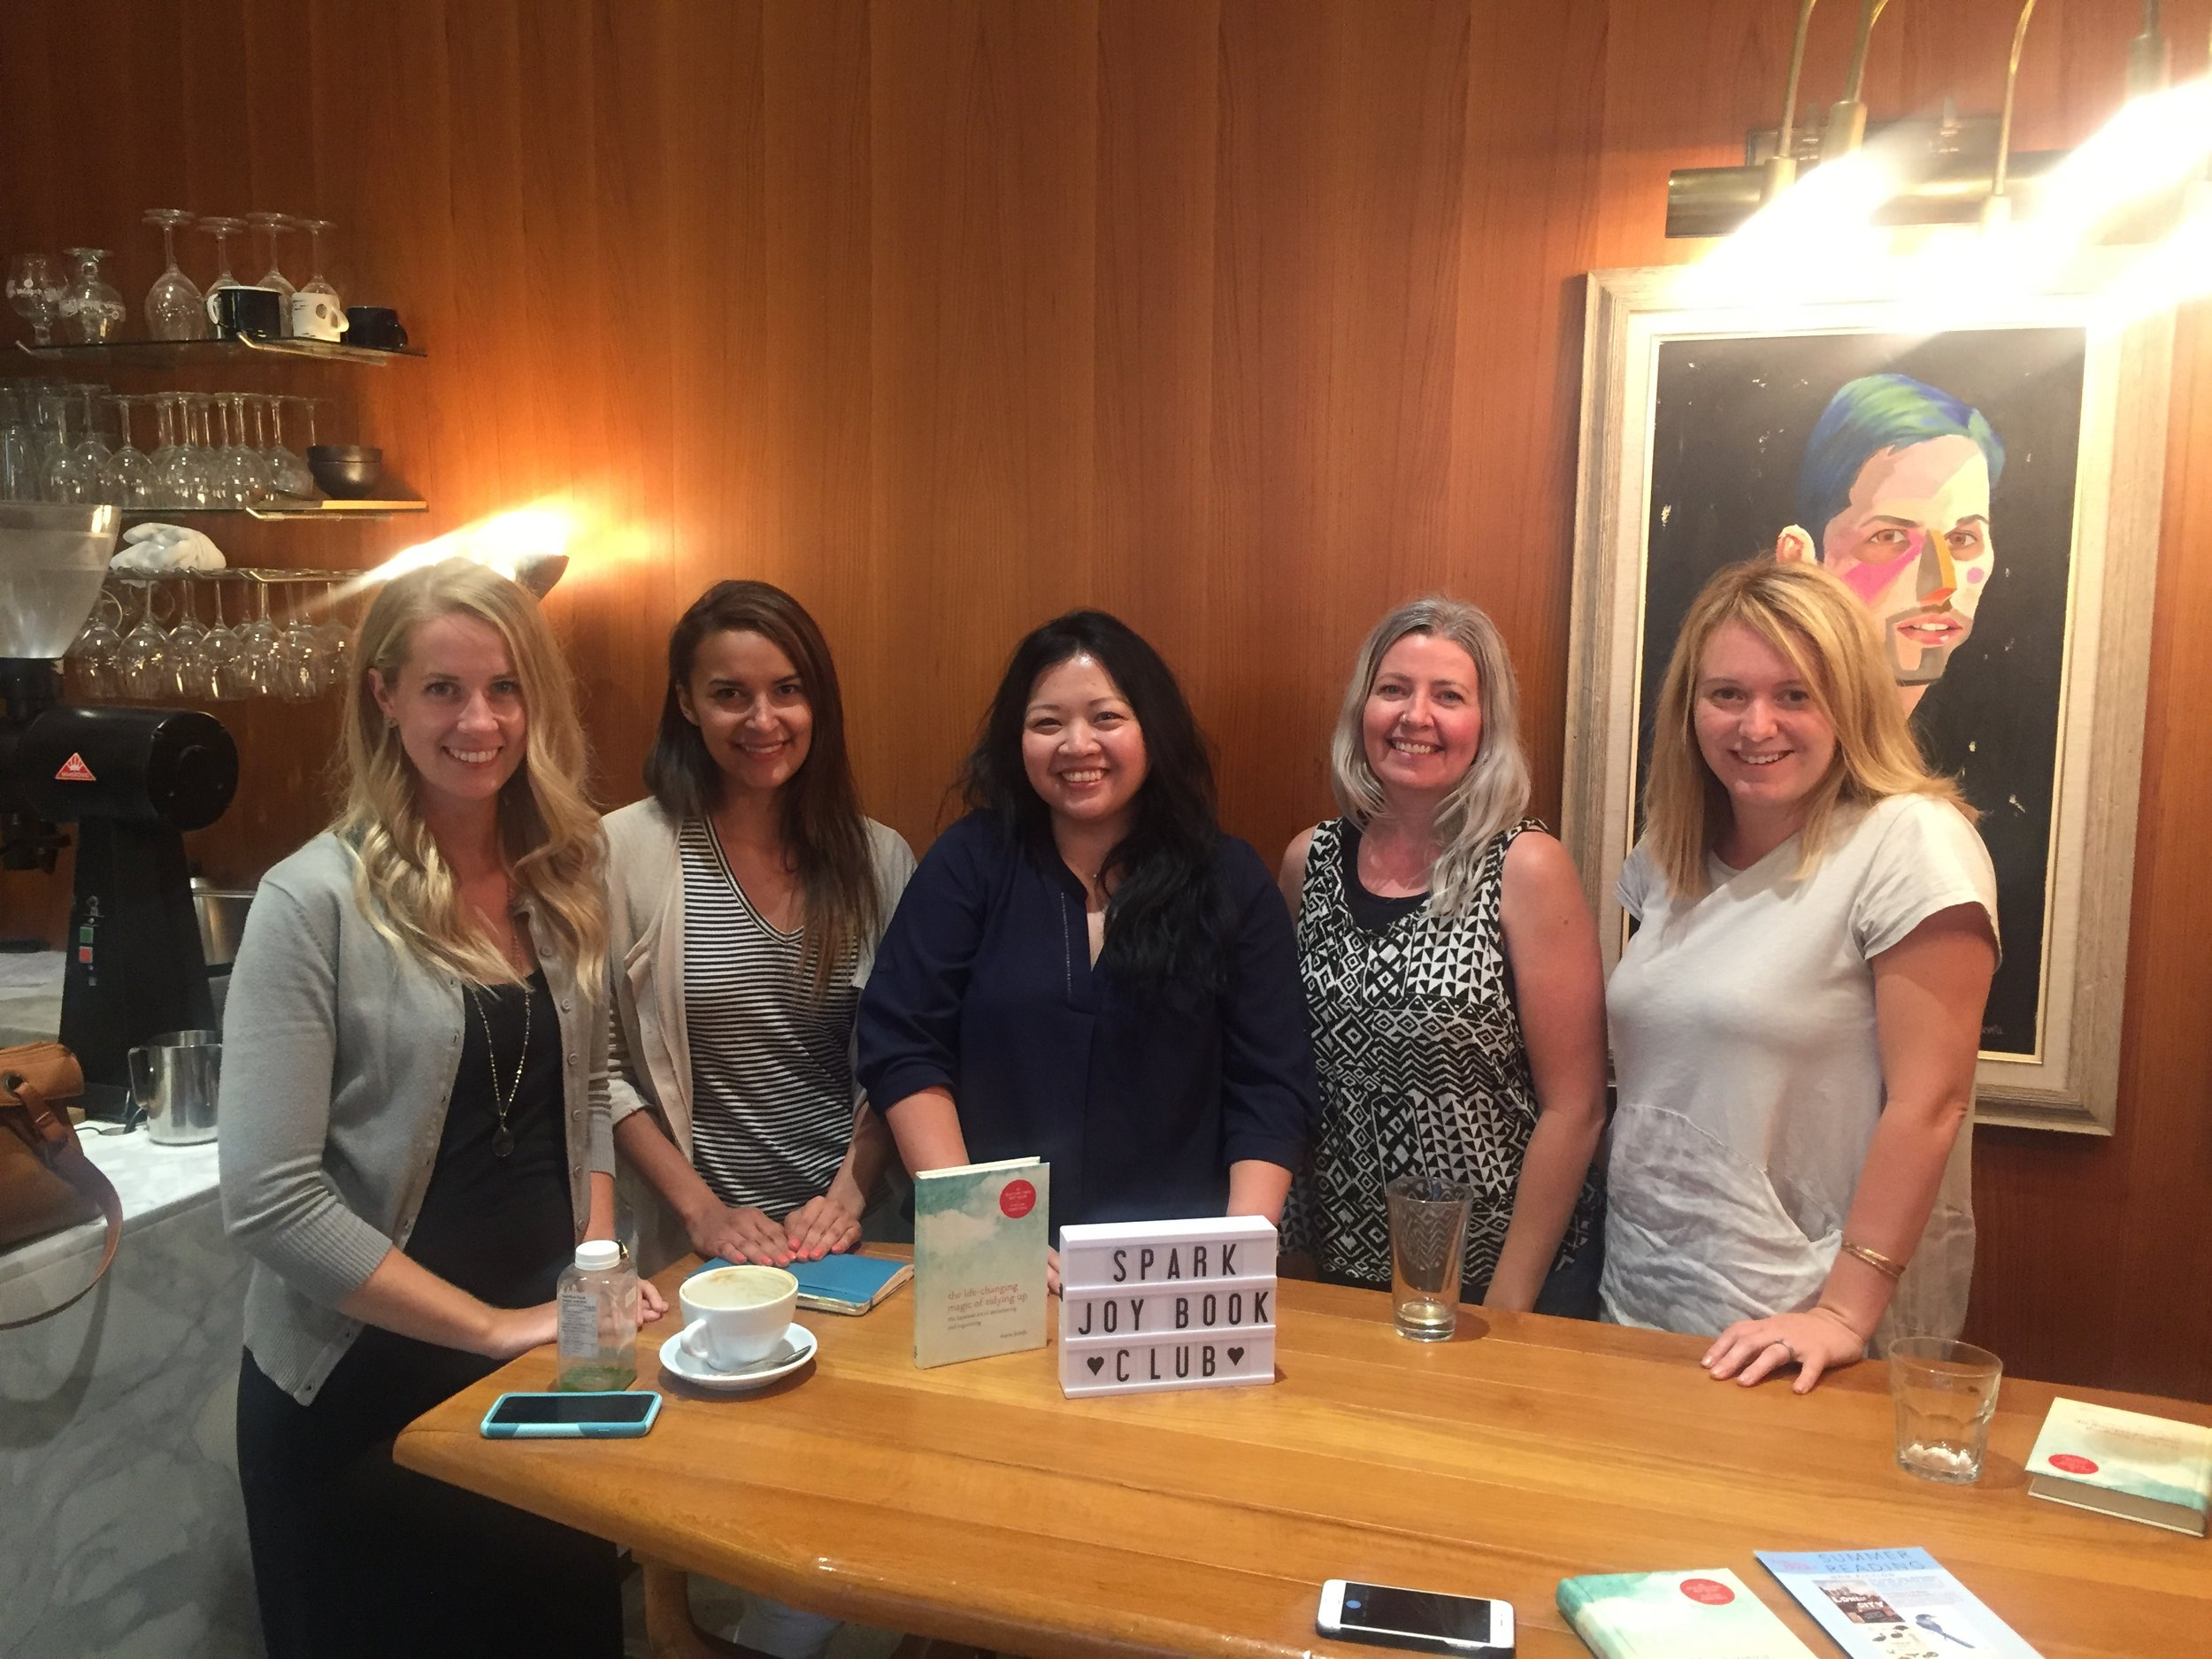 Spark Joy Book Club August 2017 Meeting at Phil & Sebastians Coffee Roasters - Mission